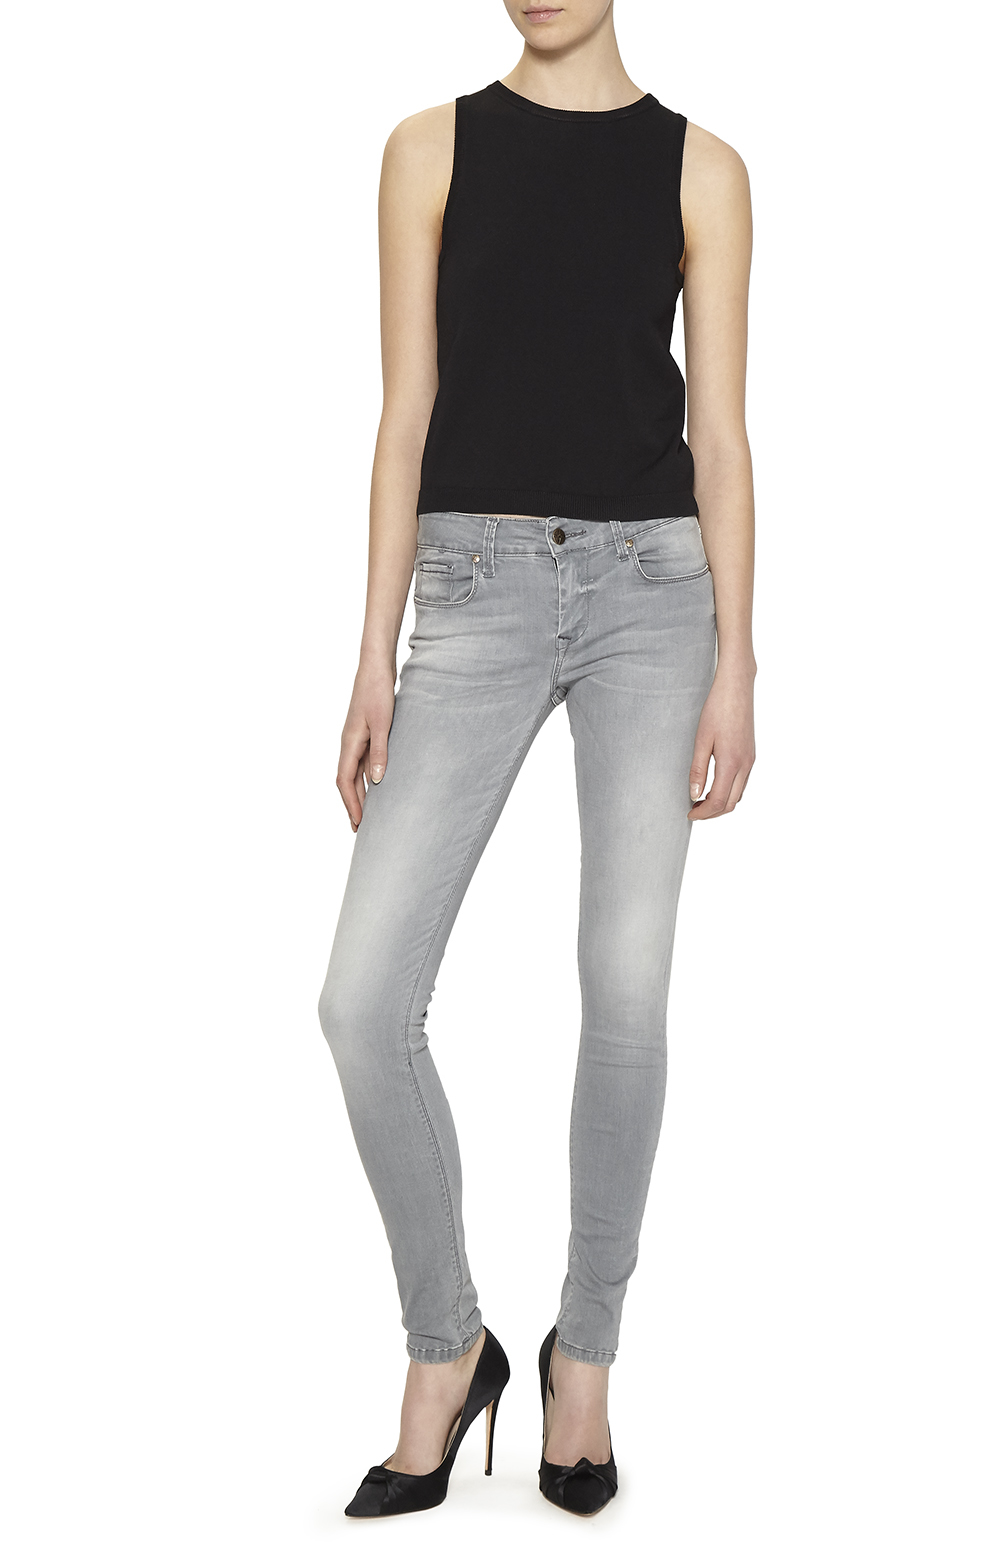 nicole miller low rise skinny jeans in gray lyst. Black Bedroom Furniture Sets. Home Design Ideas